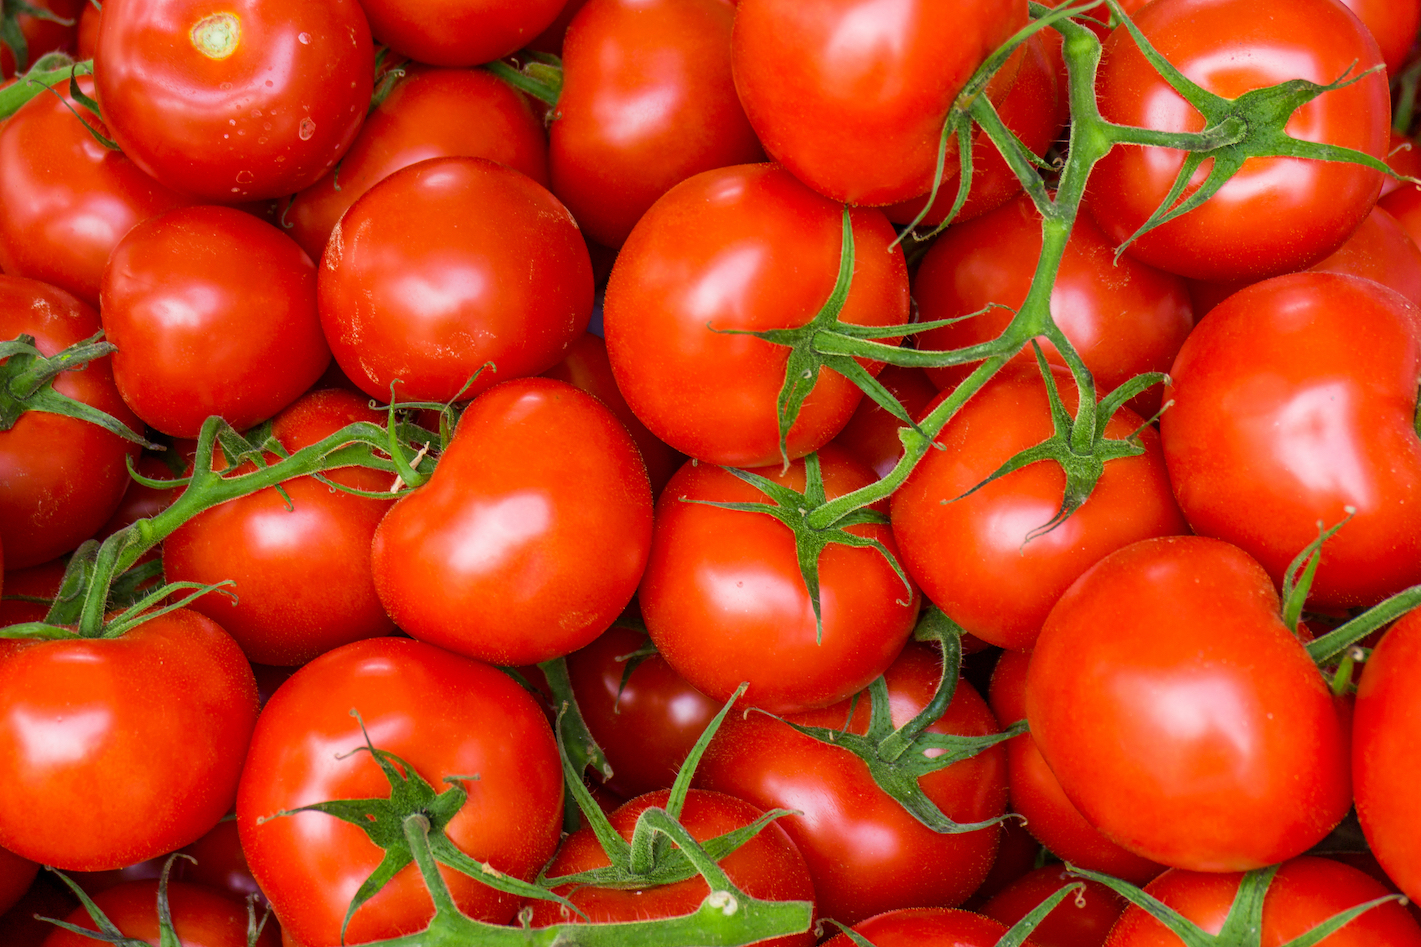 Researchers have found a way to use two formerly detrimental genes in tomatoes to actually work together and increase yield.